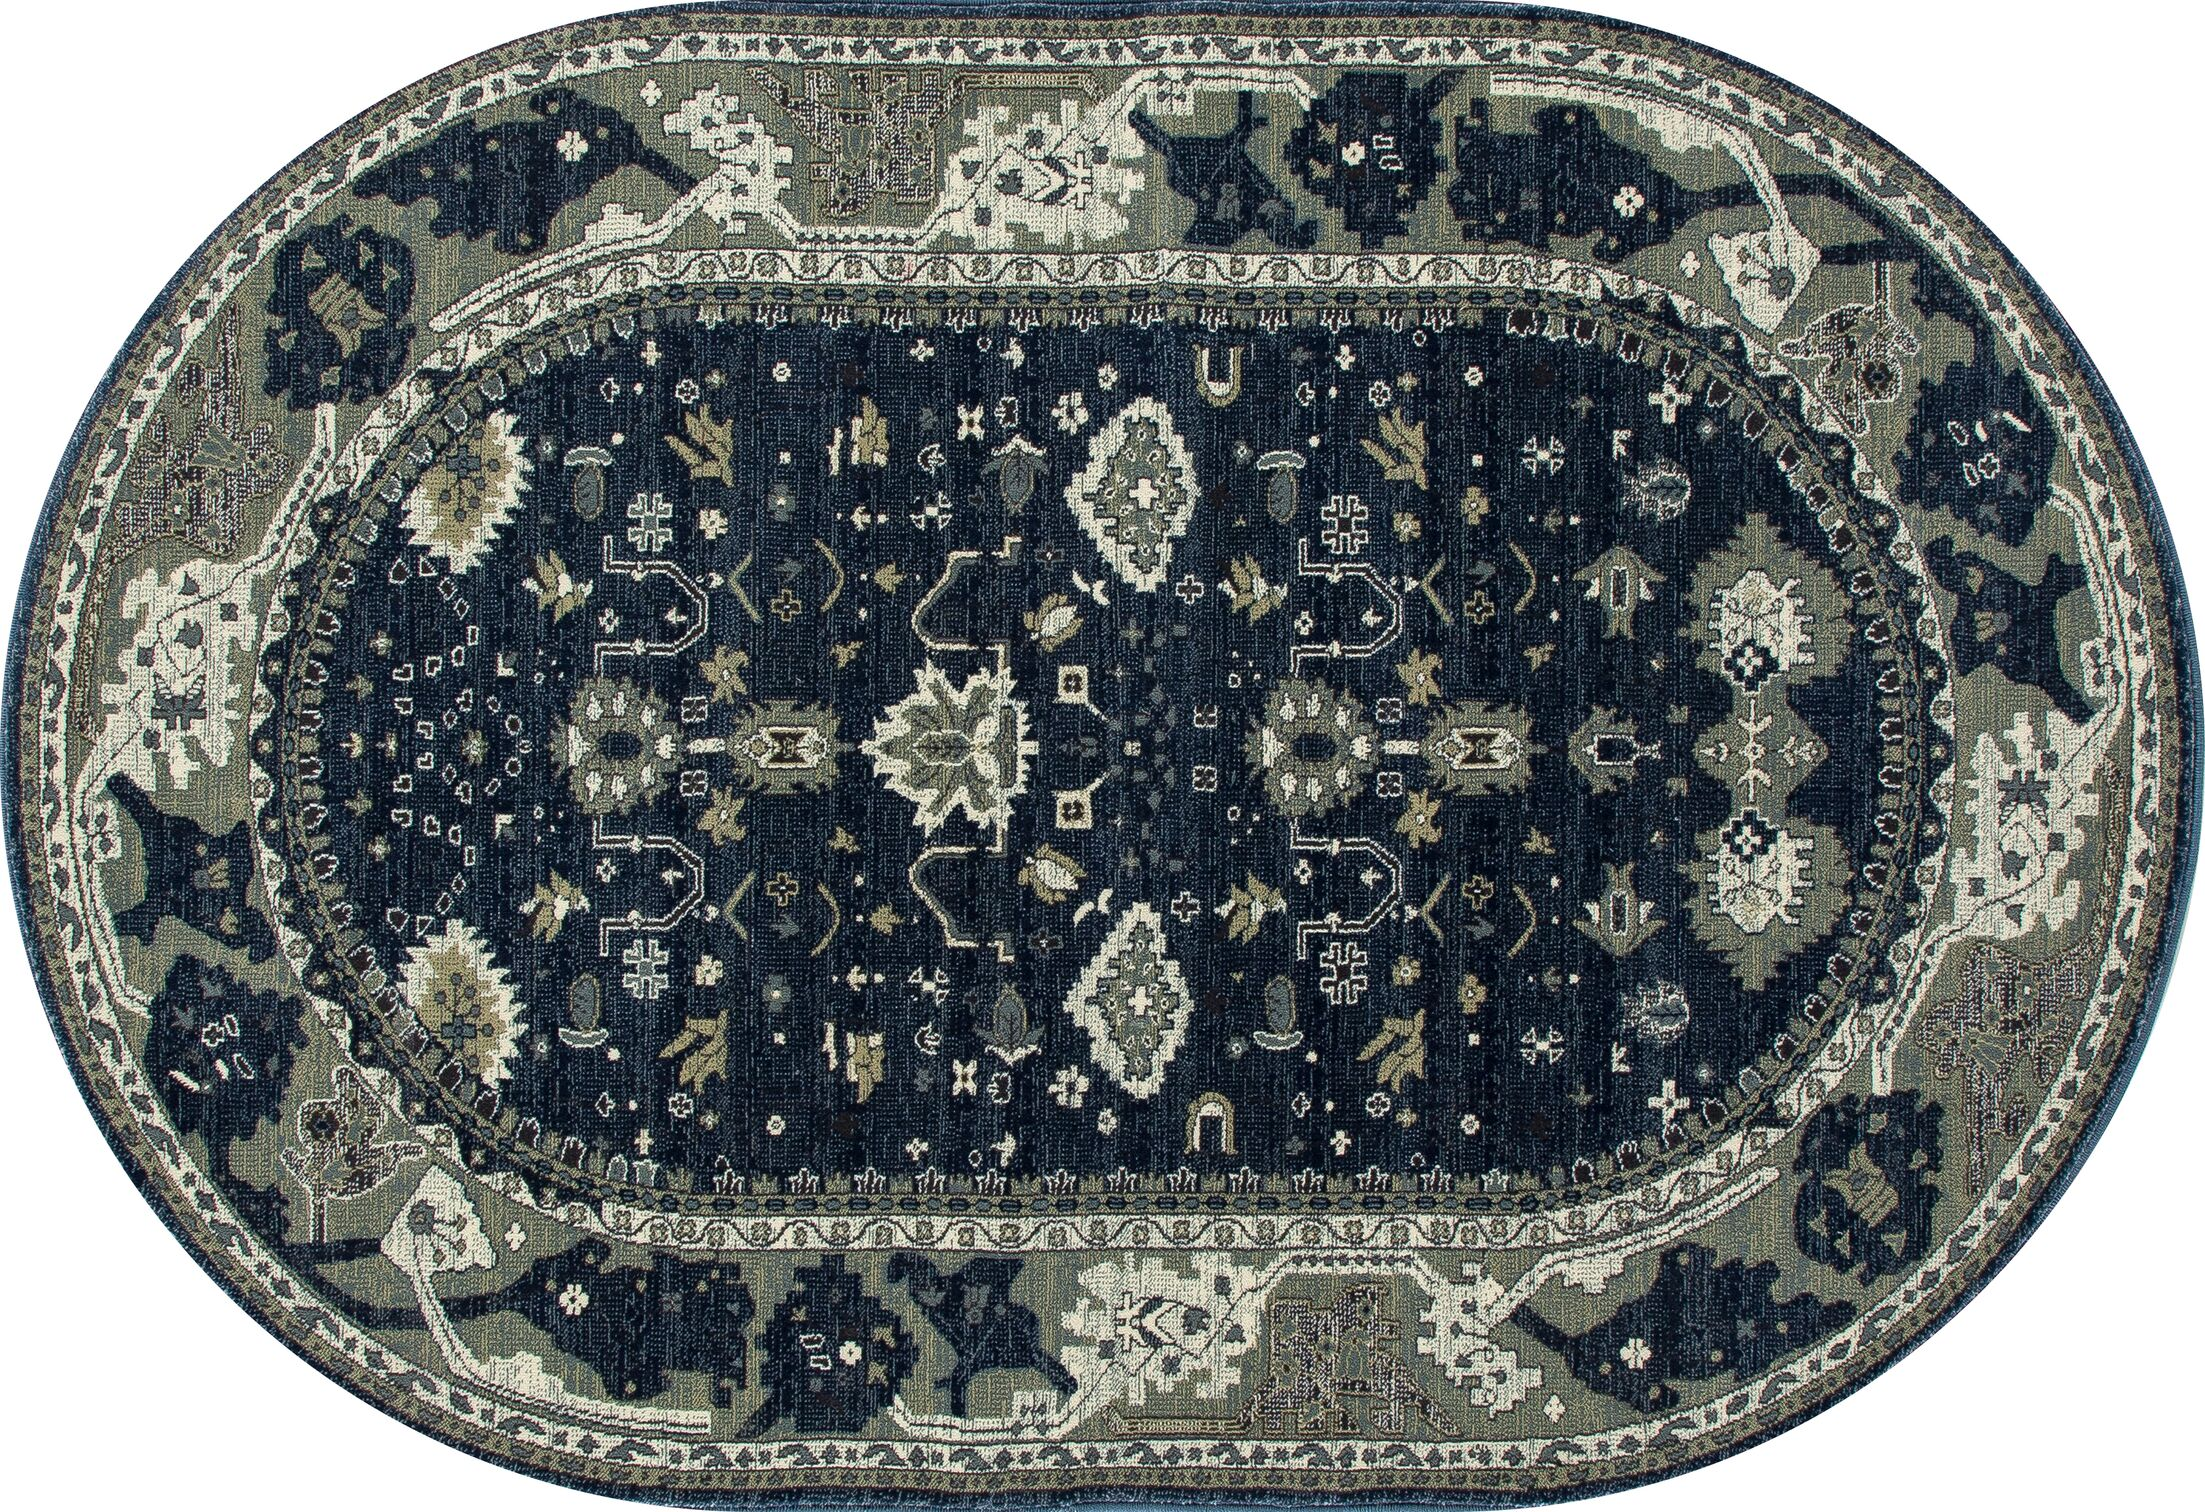 Castellano Navy Blue/Cream Indoor/Outdoor Area Rug Rug Size: 10'11 x 15'1